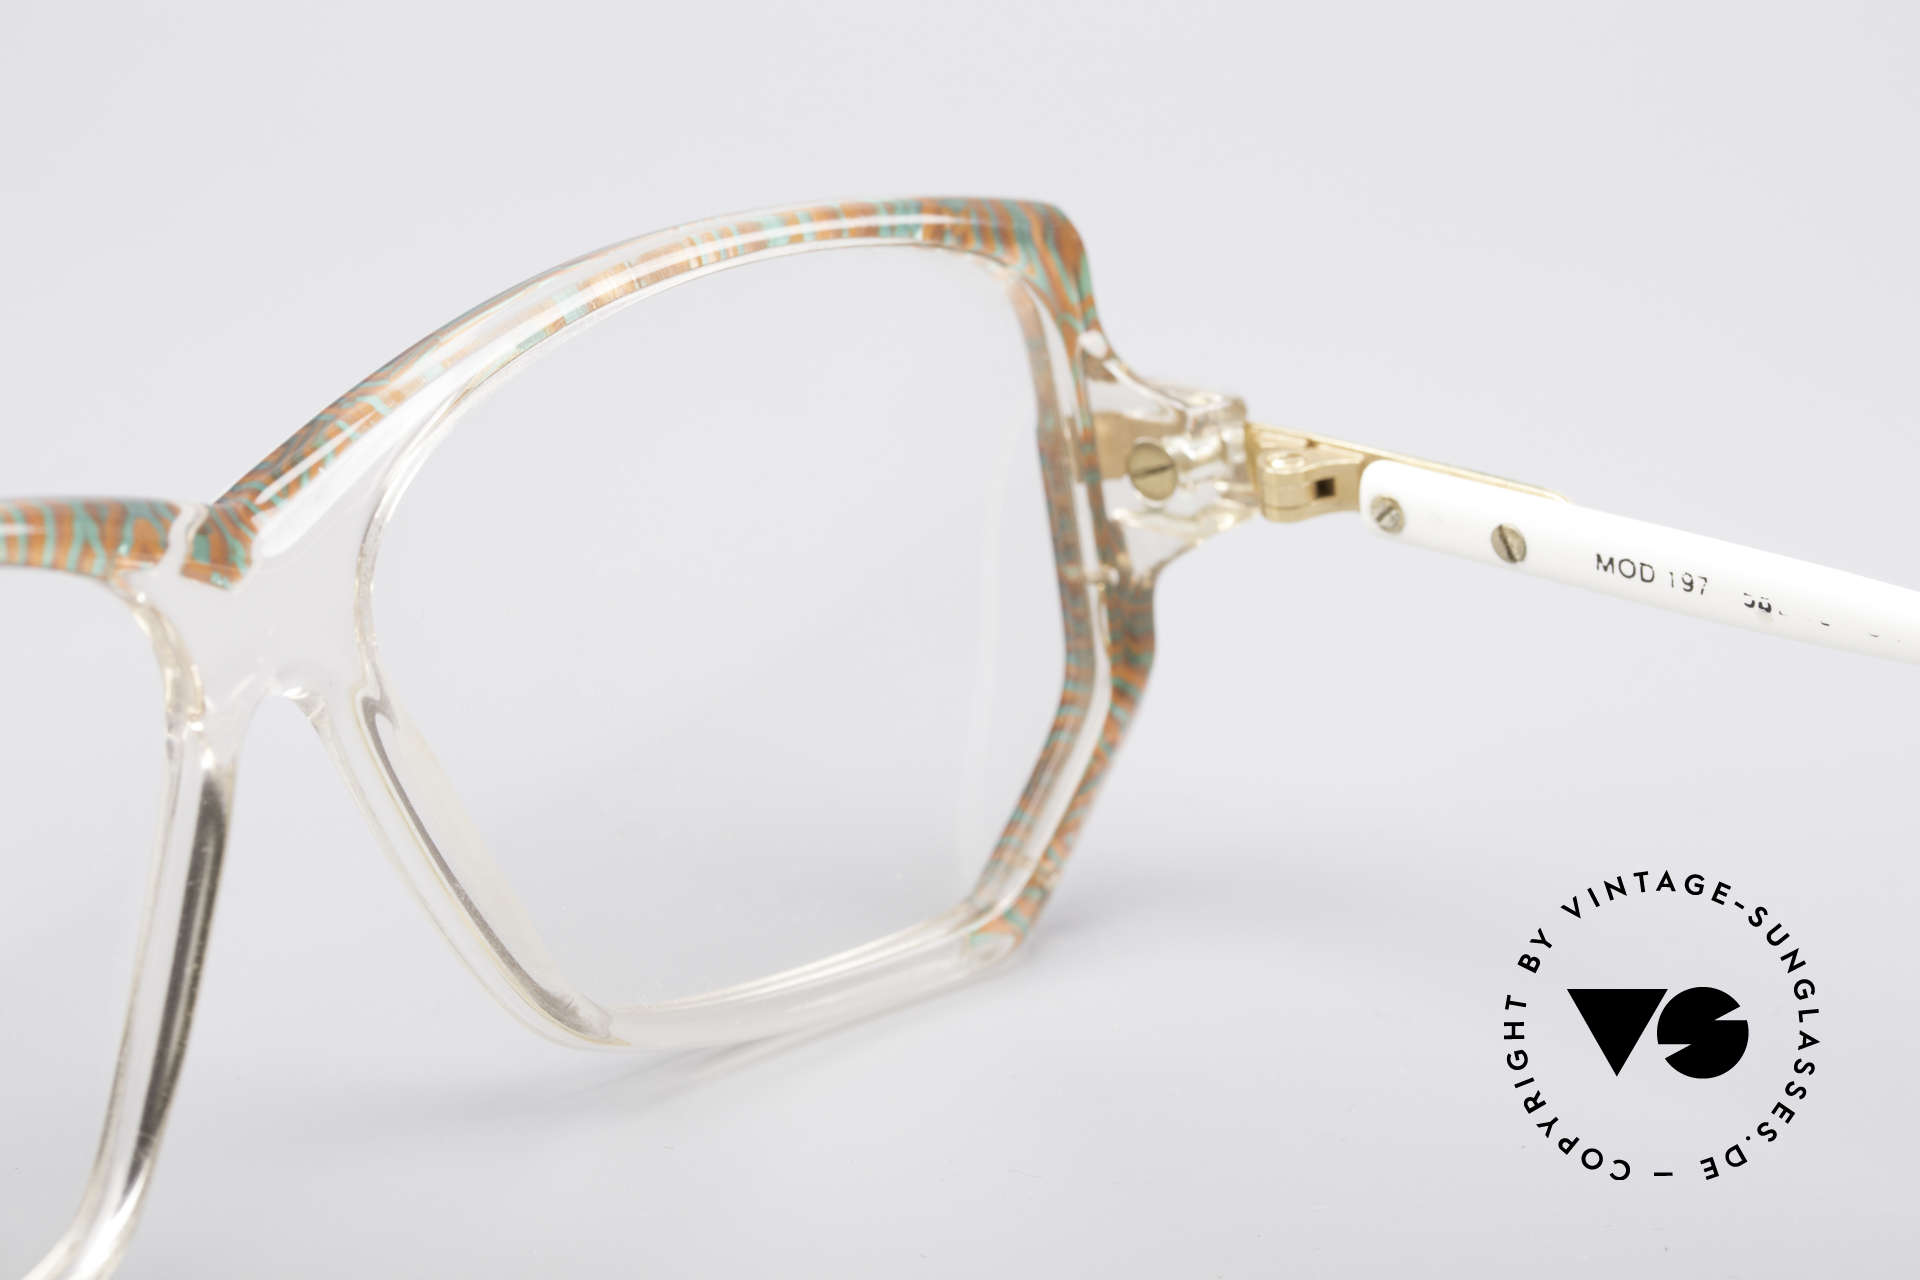 Cazal 197 80's Designer Glasses, imprints are abraded due to cleaning; thus reduced, Made for Women